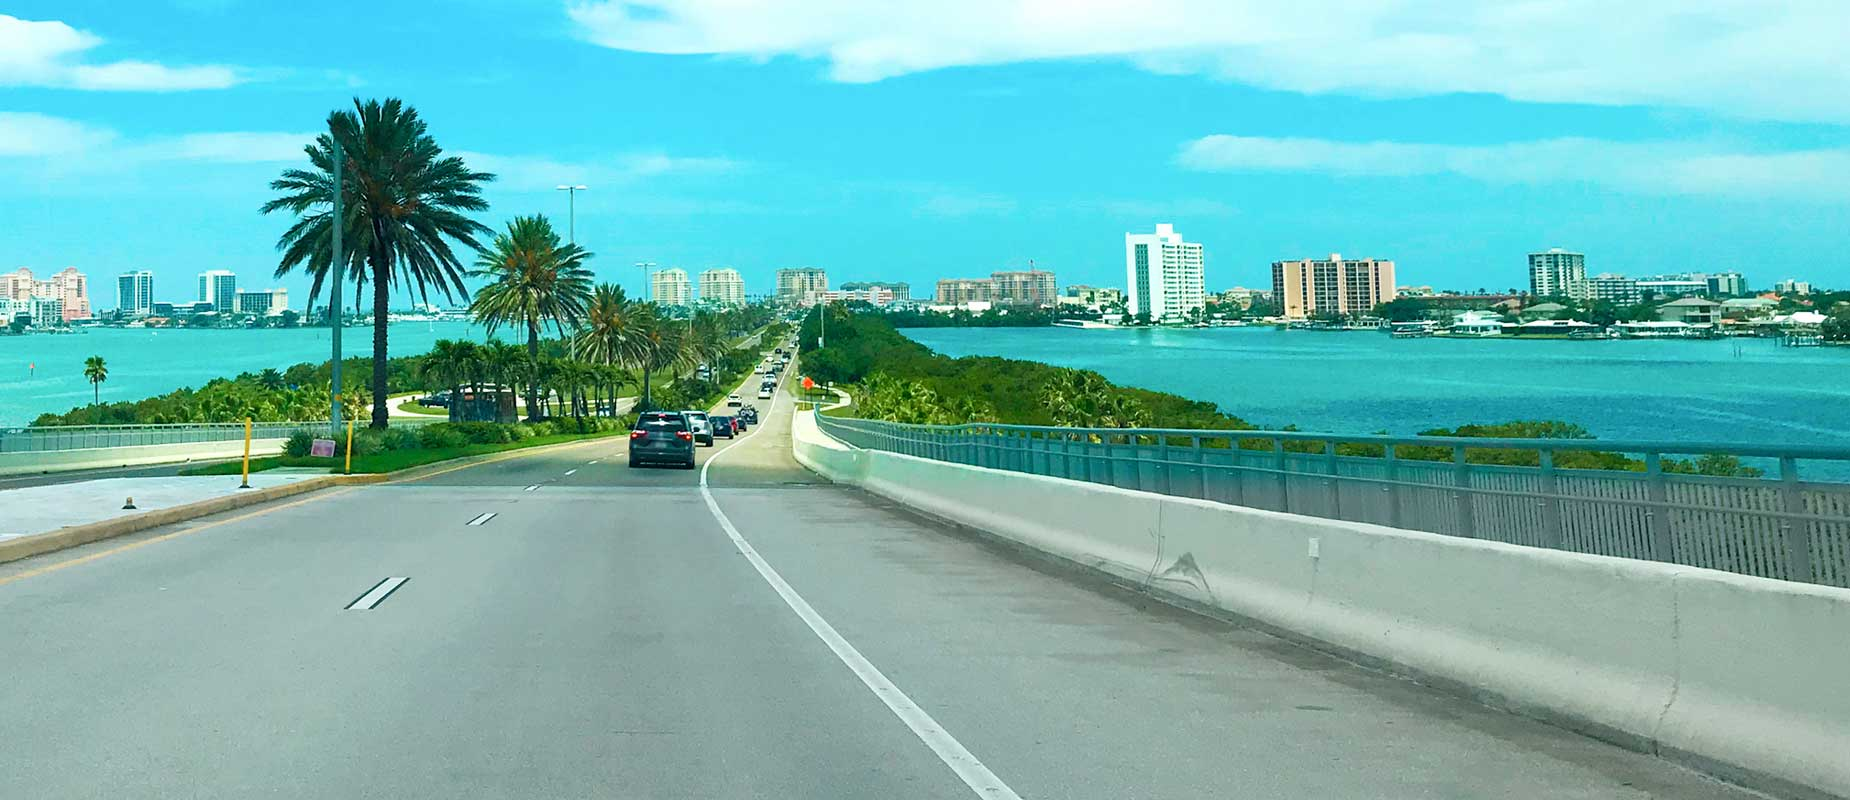 Drive Your Car to Florida | NY Driveaway Car Service